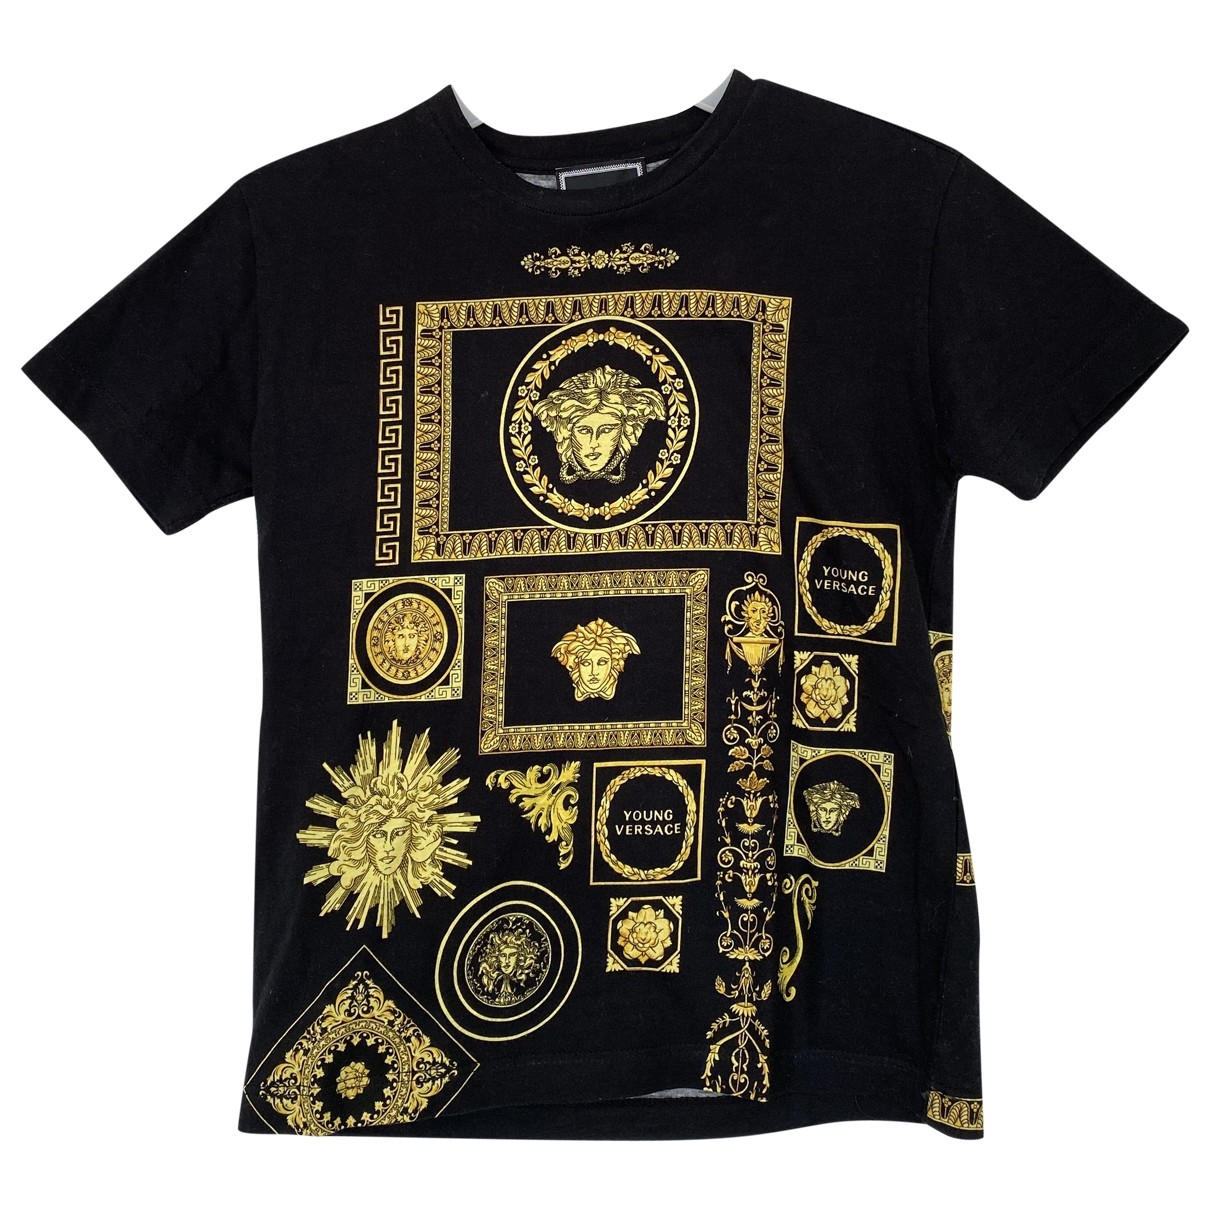 Versace \N Black Cotton  top for Kids 6 years - until 45 inches UK